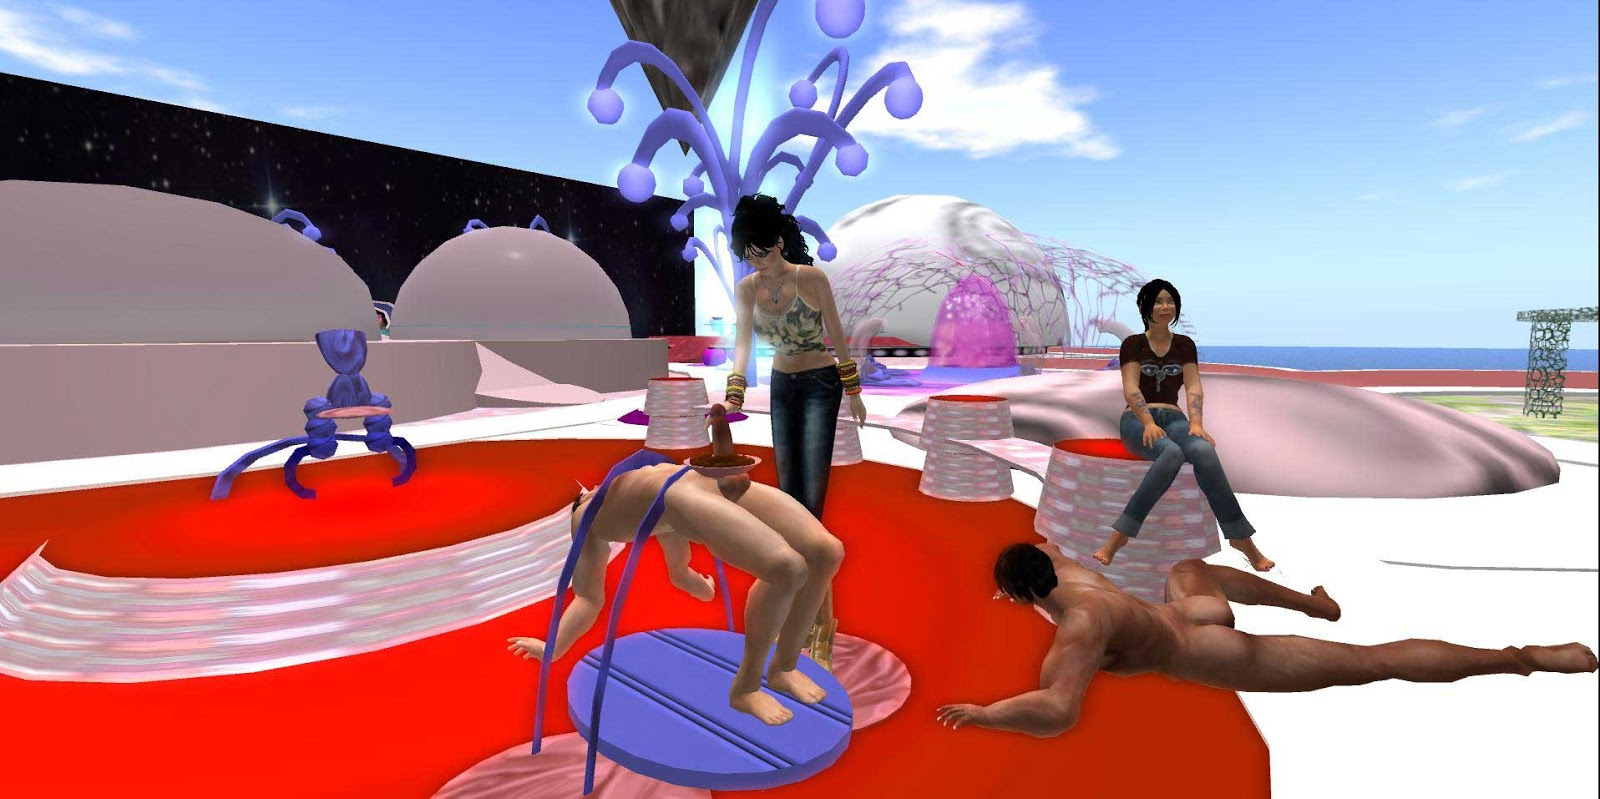 Femdom In Second Life It Still Exists Ginette Pinazzo Talks Matriarchy In The Virtual World Female Led Society